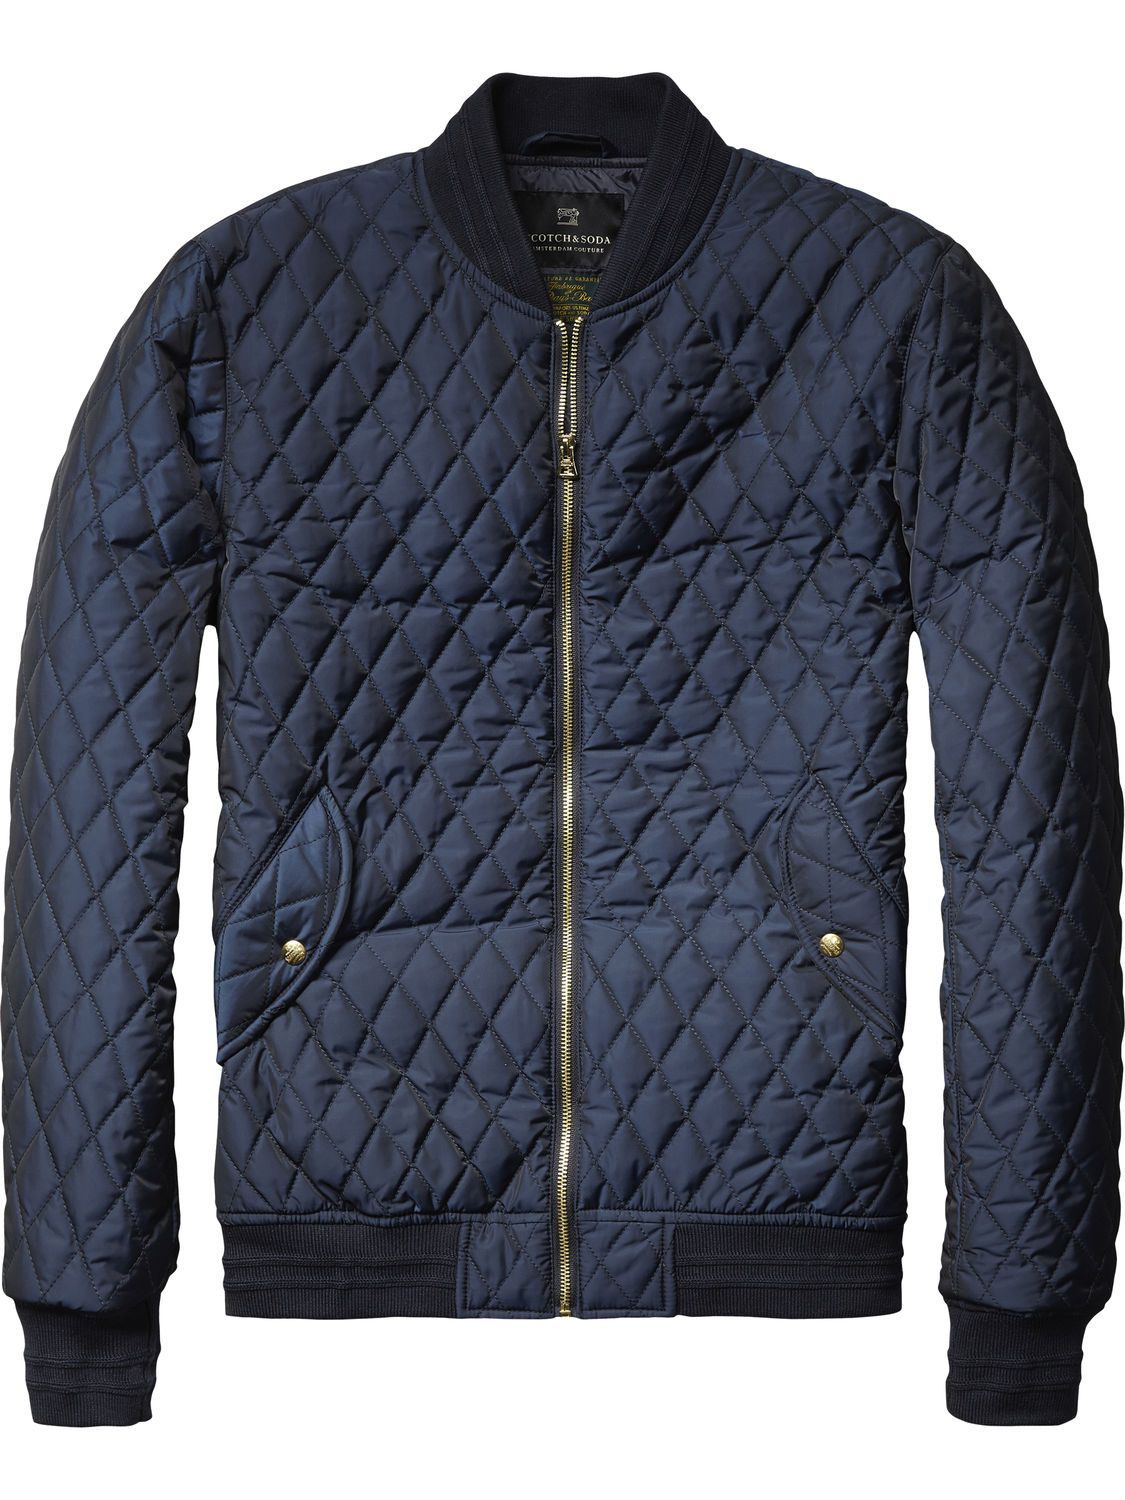 61e62d04f Quilted Nylon Bomber Jacket | Jackets | Men's Clothing at Scotch ...